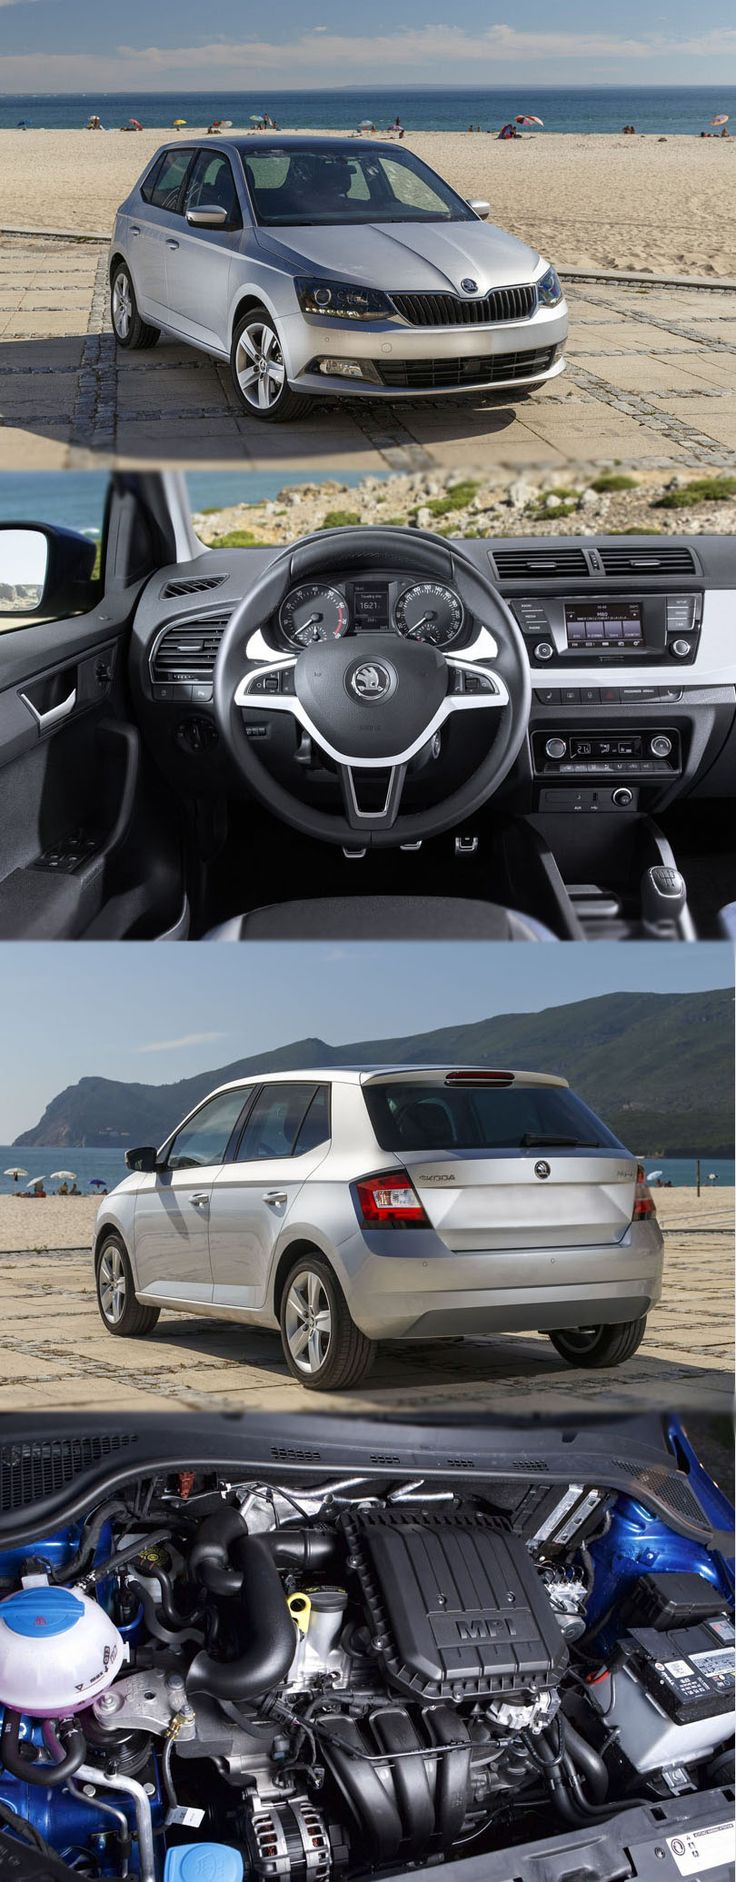 Skoda confirms new fabia will be launched in 2018 for more detail https techblogcar